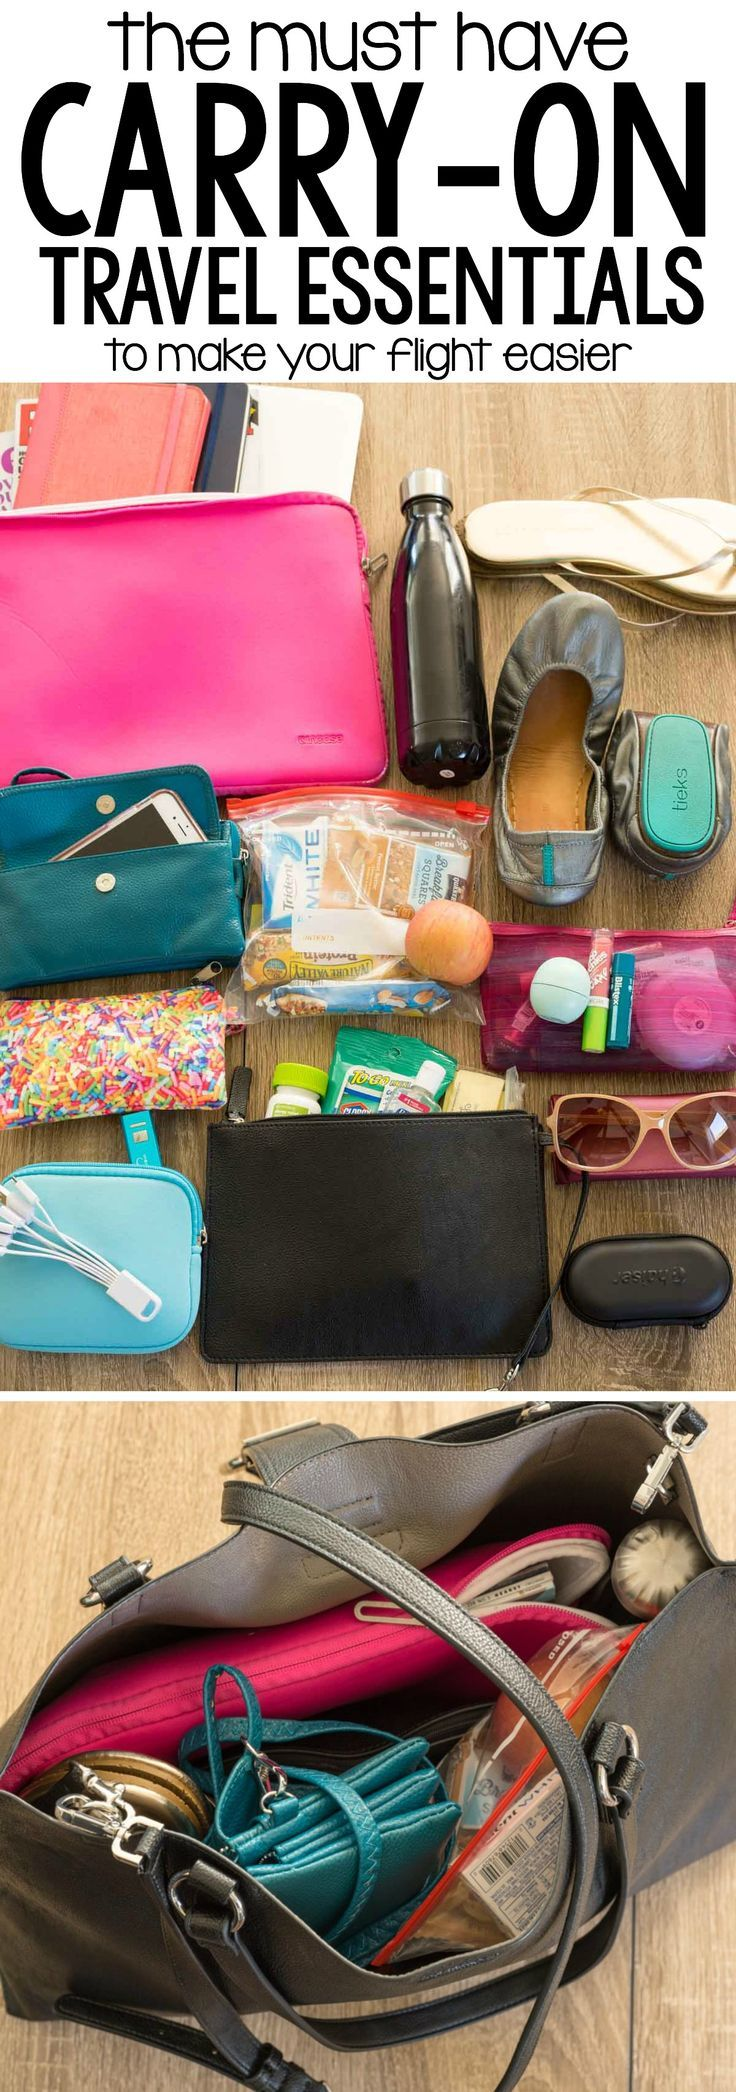 The 10 MUST HAVE Carry On Travel Essentials that will make your flight easier. Every woman traveler needs these 10 things!!